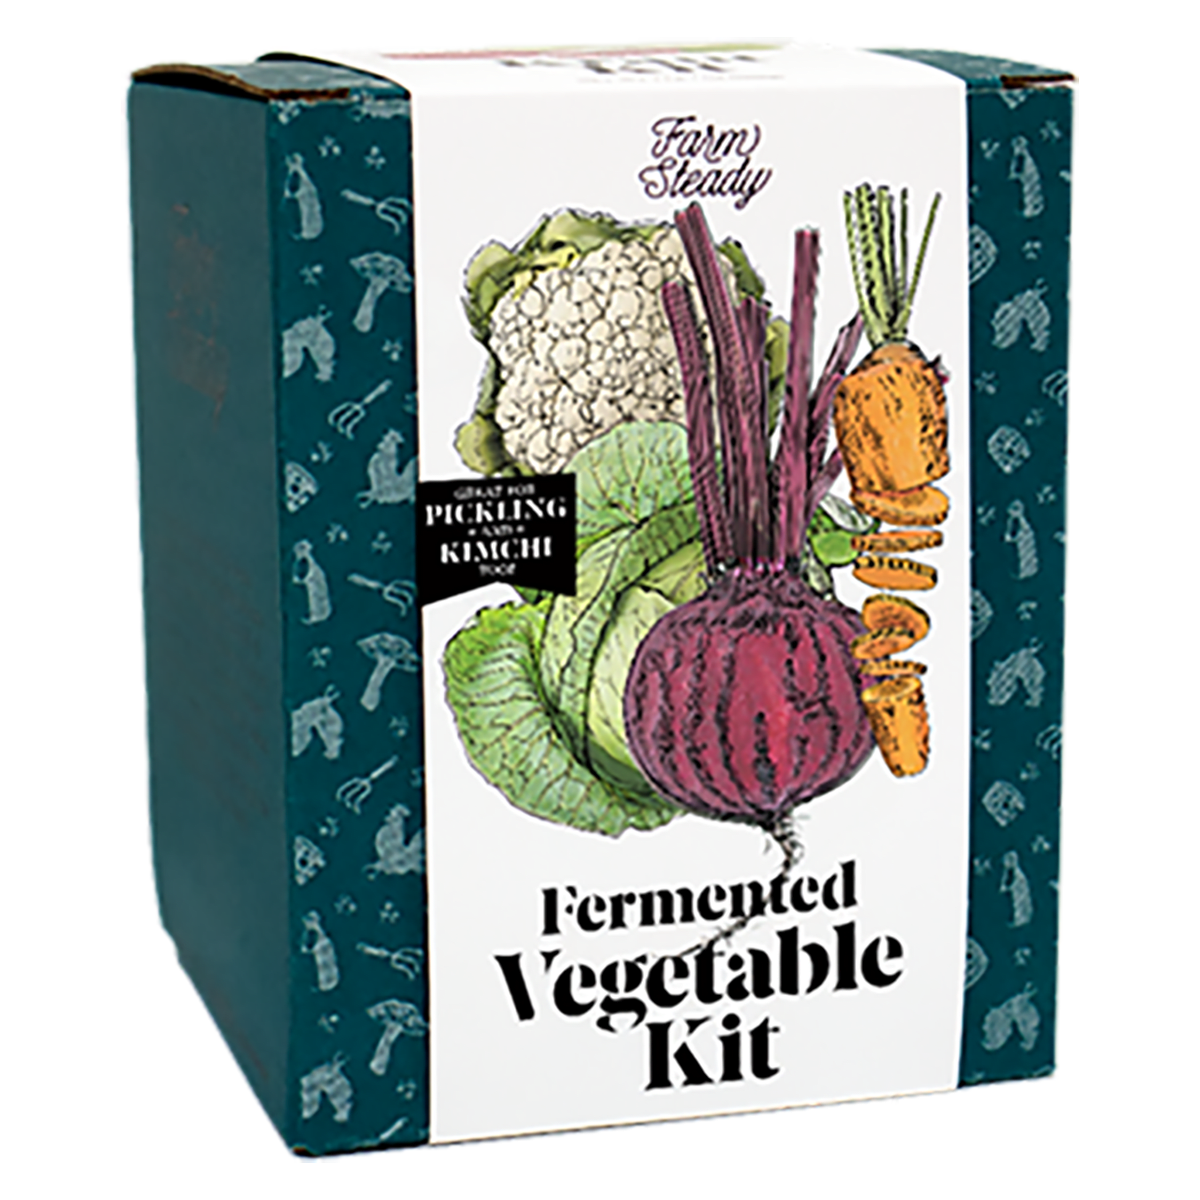 Front view of Farm Steady Fermented Vegetable Kit box. Great for pickling and kimchi too.